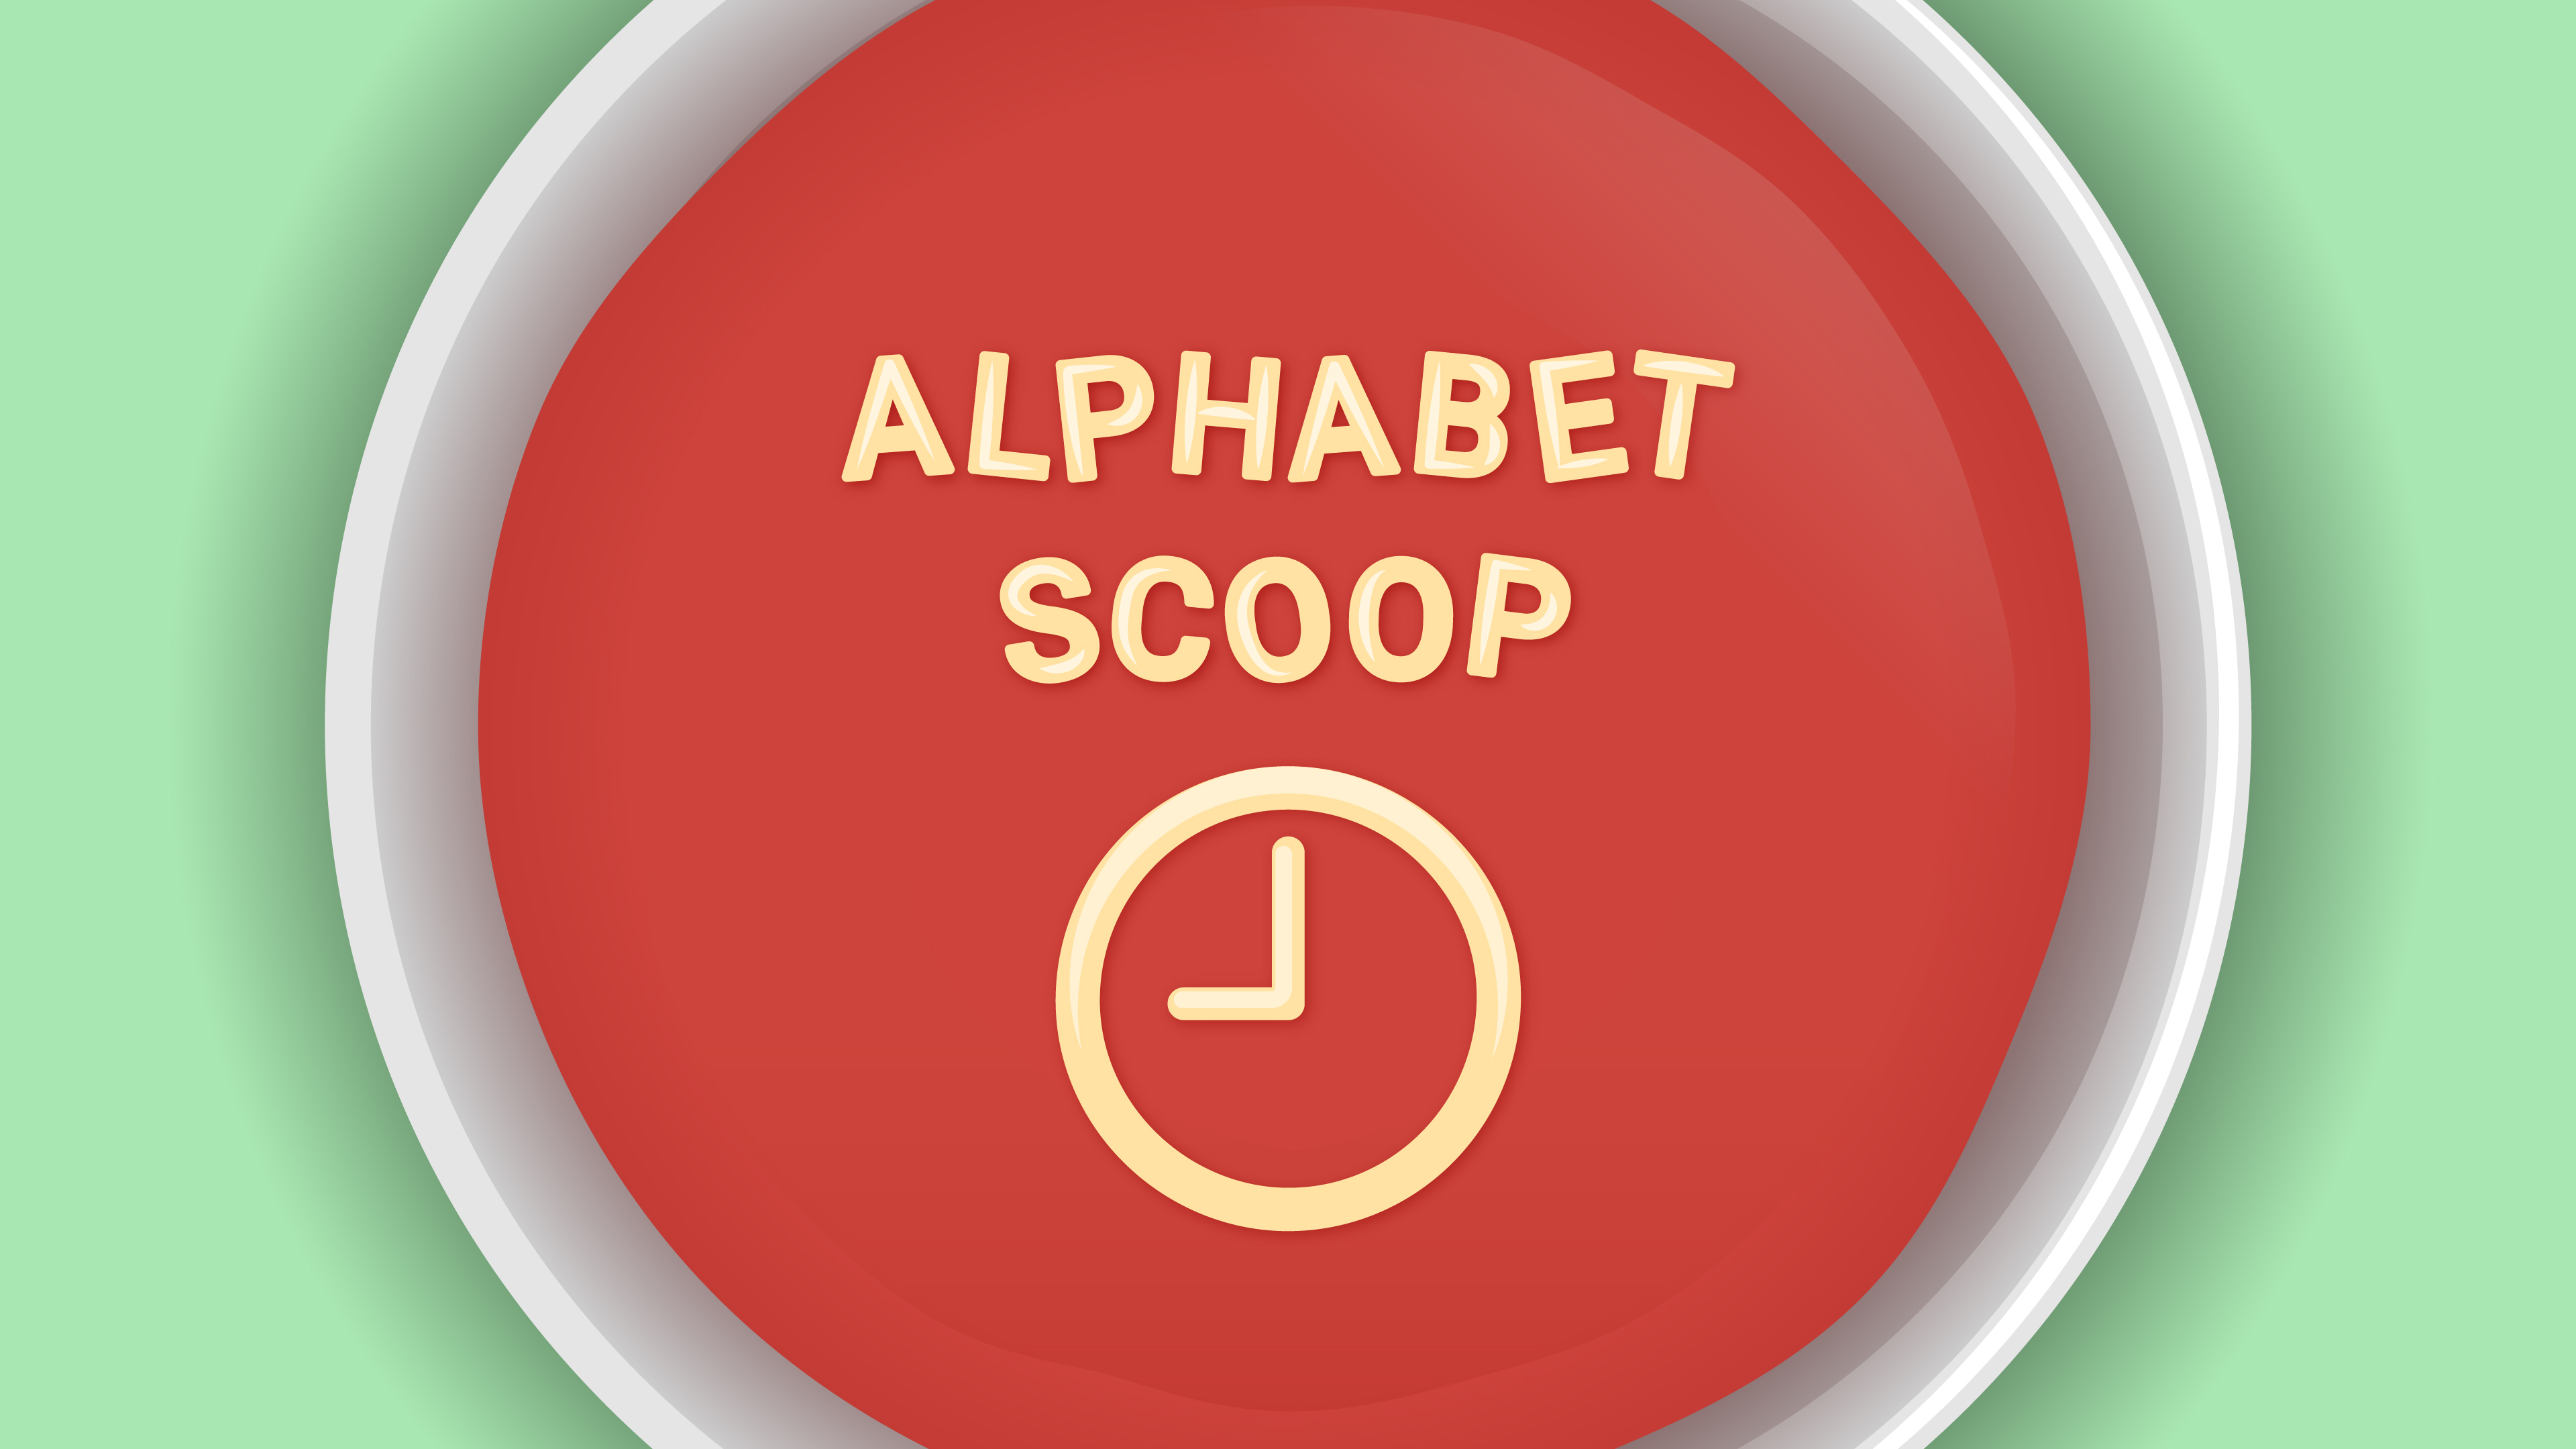 Alphabet Scoop - The official 9to5Google Podcast - 9to5Google